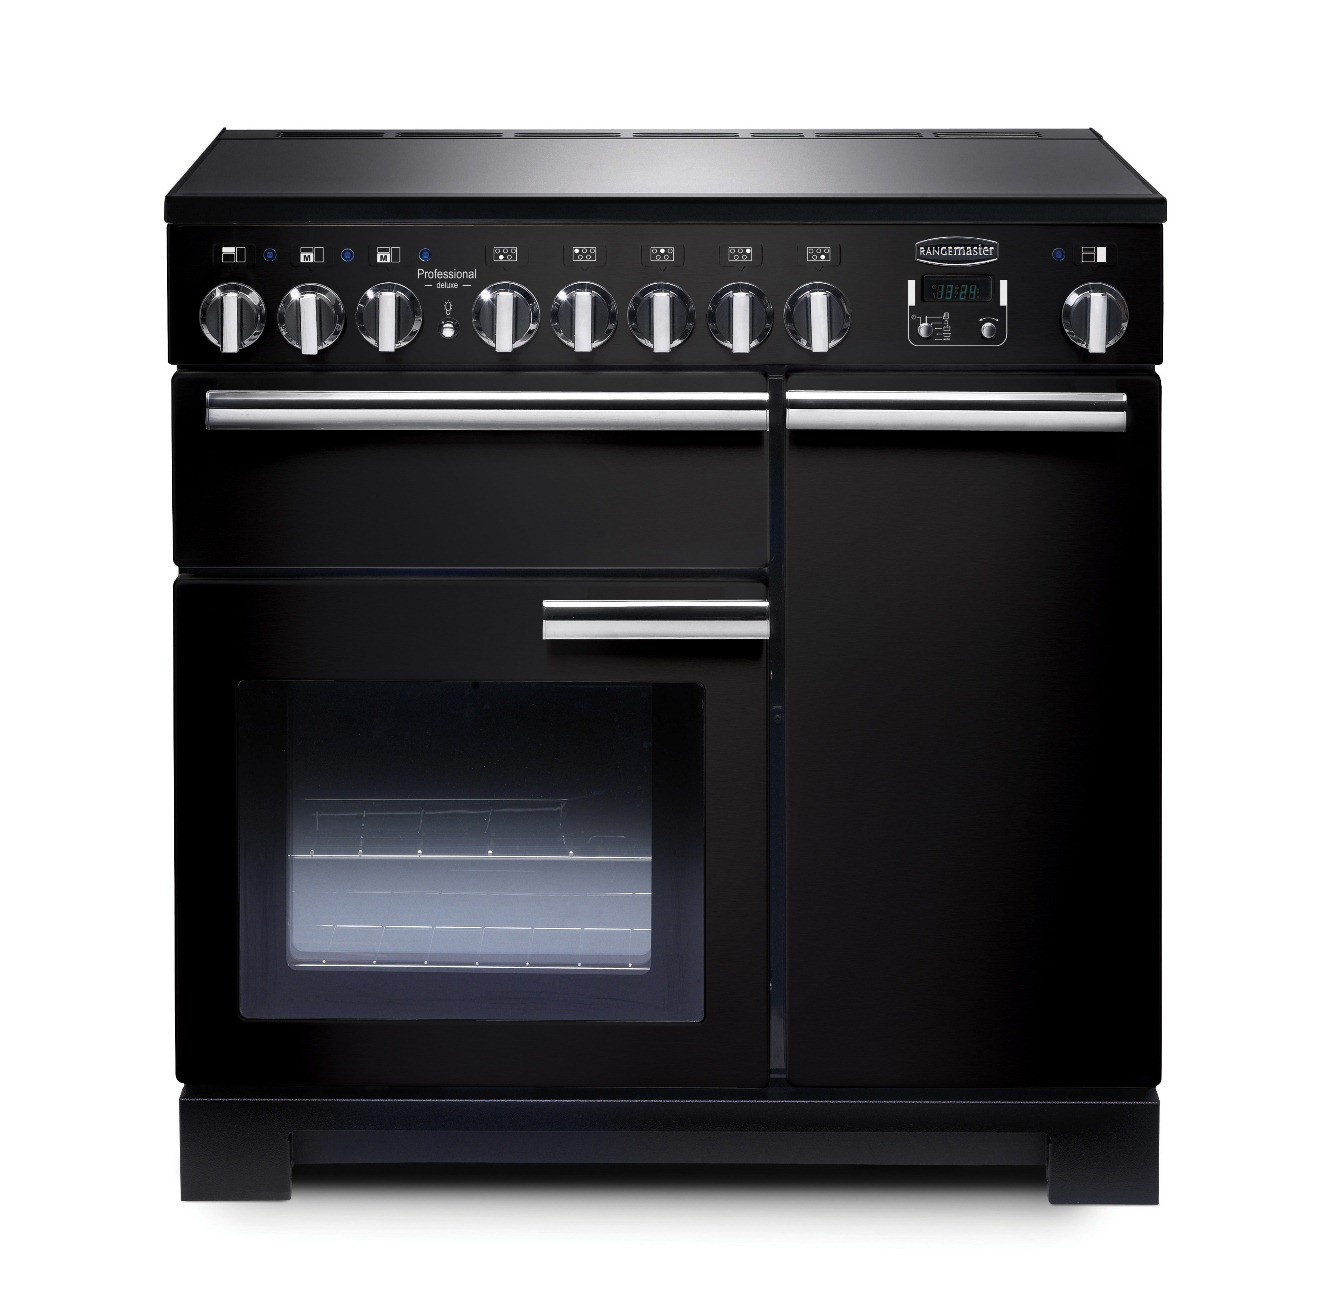 Rangemaster Professional Deluxe 90 Induction Black Range Cooker PDL90EIGB/C 97870